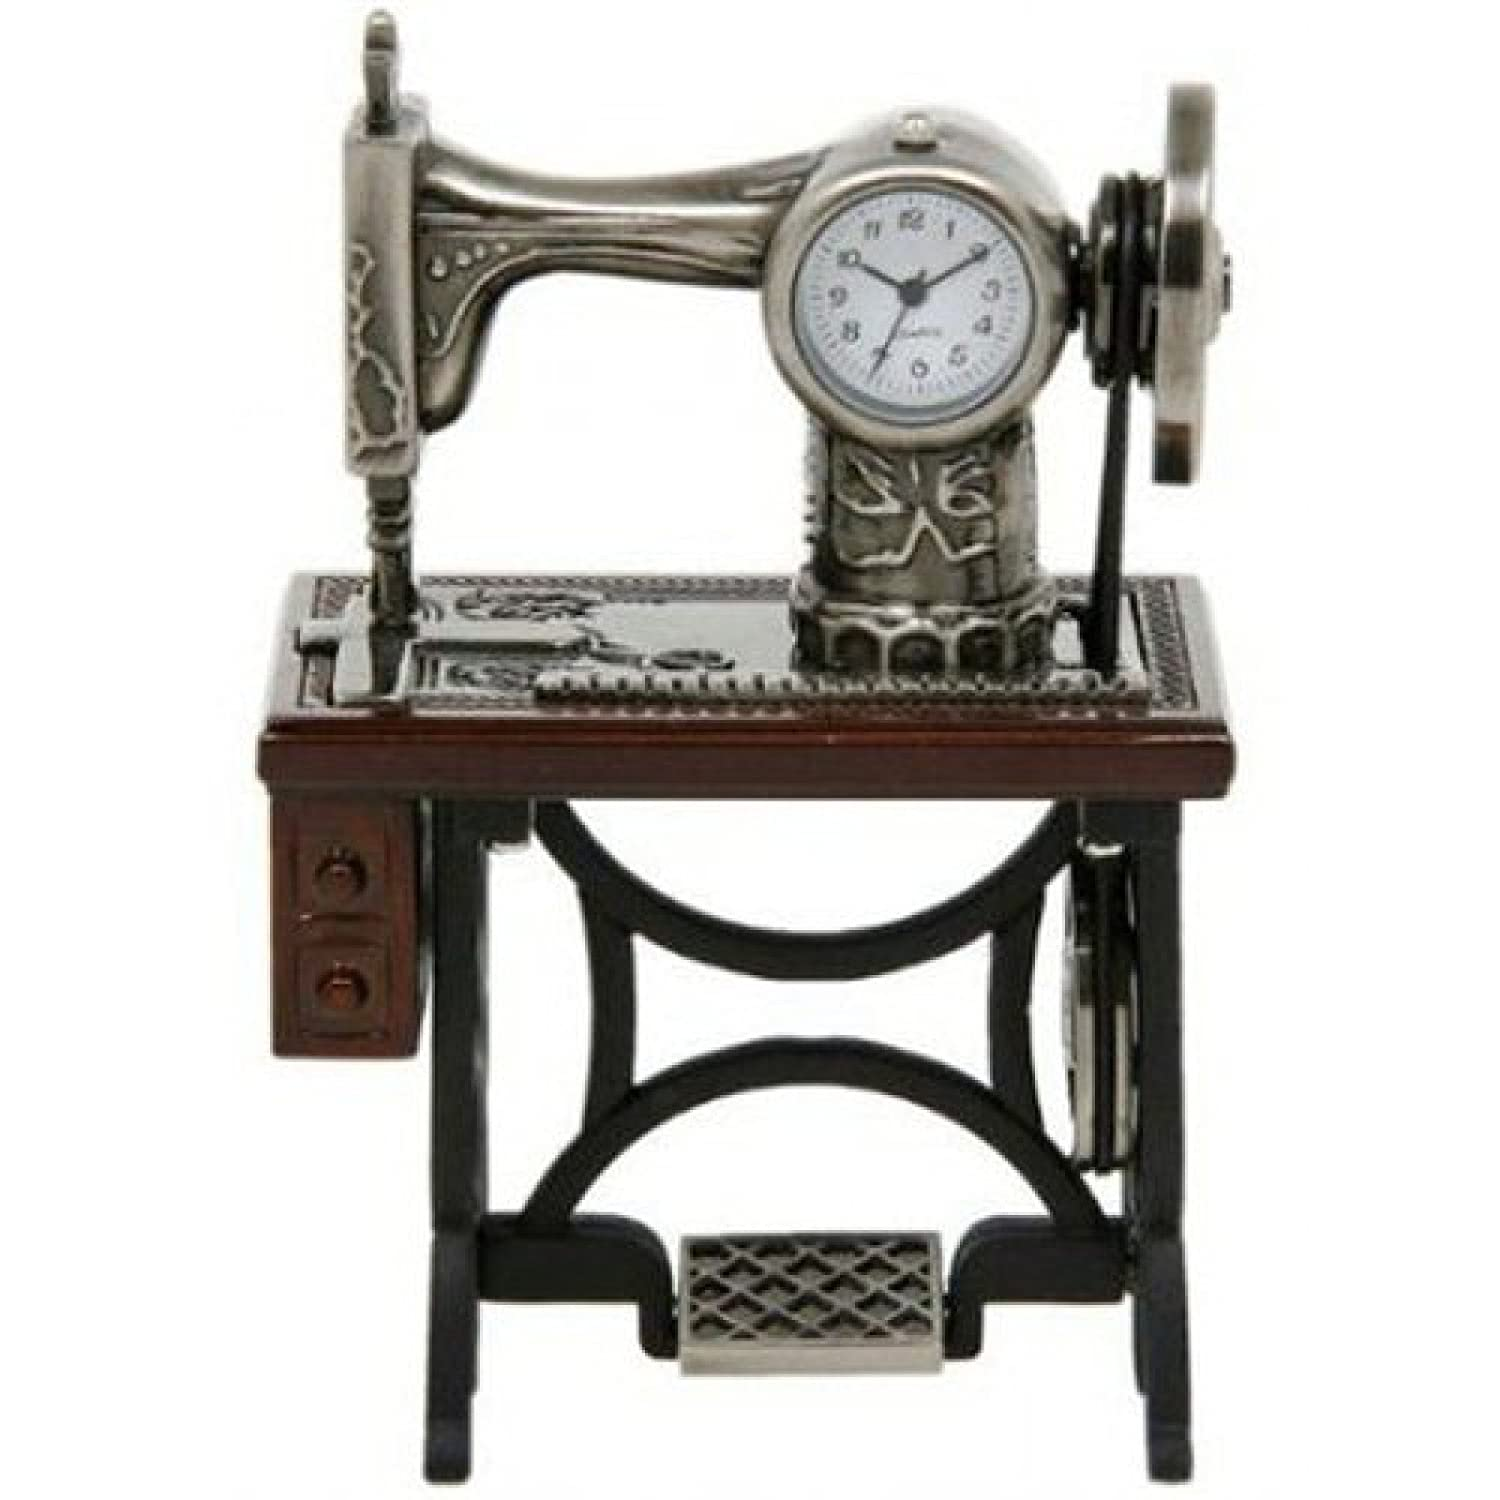 Miniature Old Fashioned Sewing Machine on Table Novelty Desktop Collectors Clock Joe Davies 0460